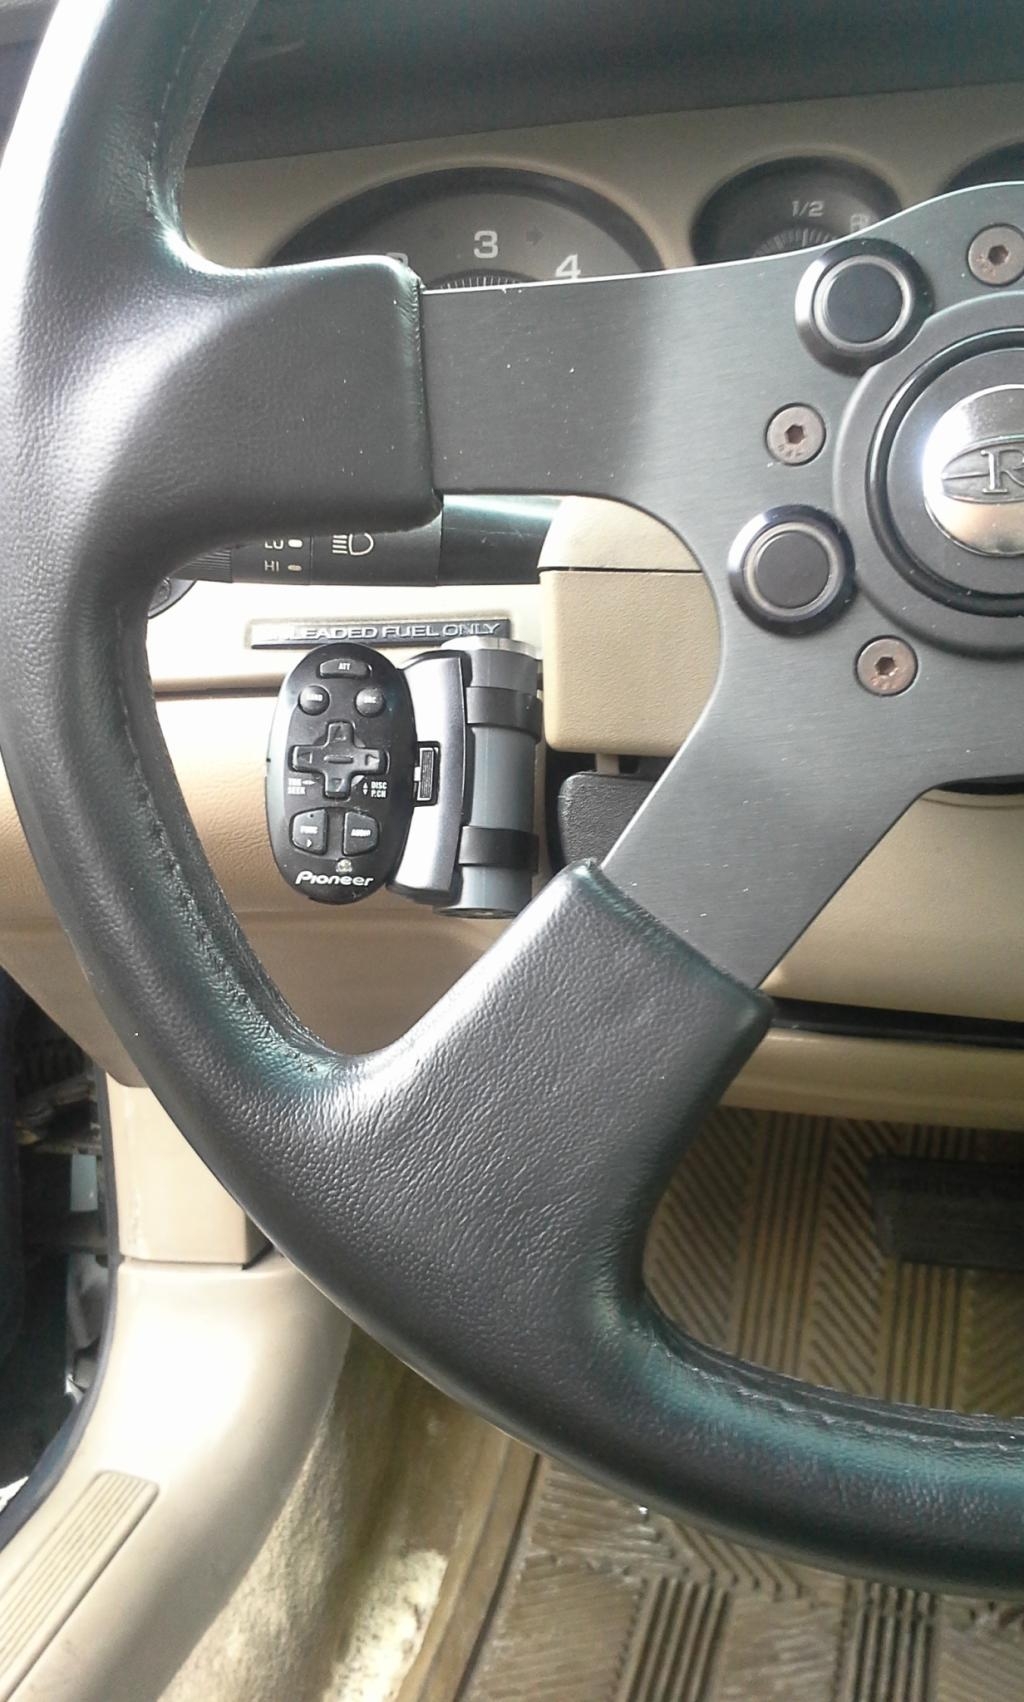 Steering wheel audio control 20150131_134518